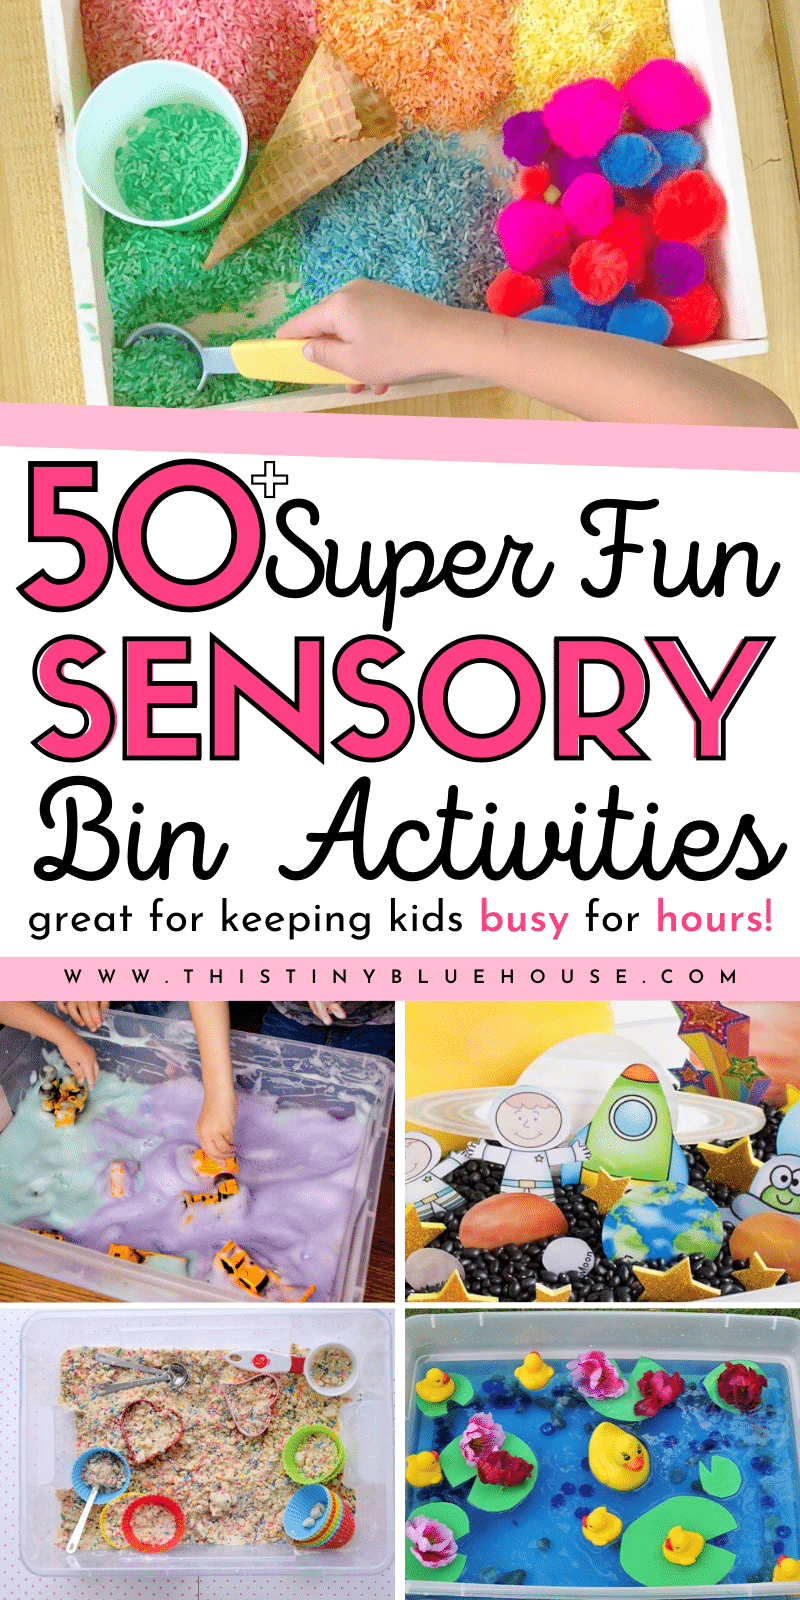 Encourage young kids to use their senses to discover, create, explore and LEARN through play with these 60 super fun sensory bin activities for young kids. #sensorybins #sensorybinsfortoddlers #sensorybinsideas #sensorybinsforpreschool #easysensorybins #activitiesforyourkids #activitiestokeepkidsbusy